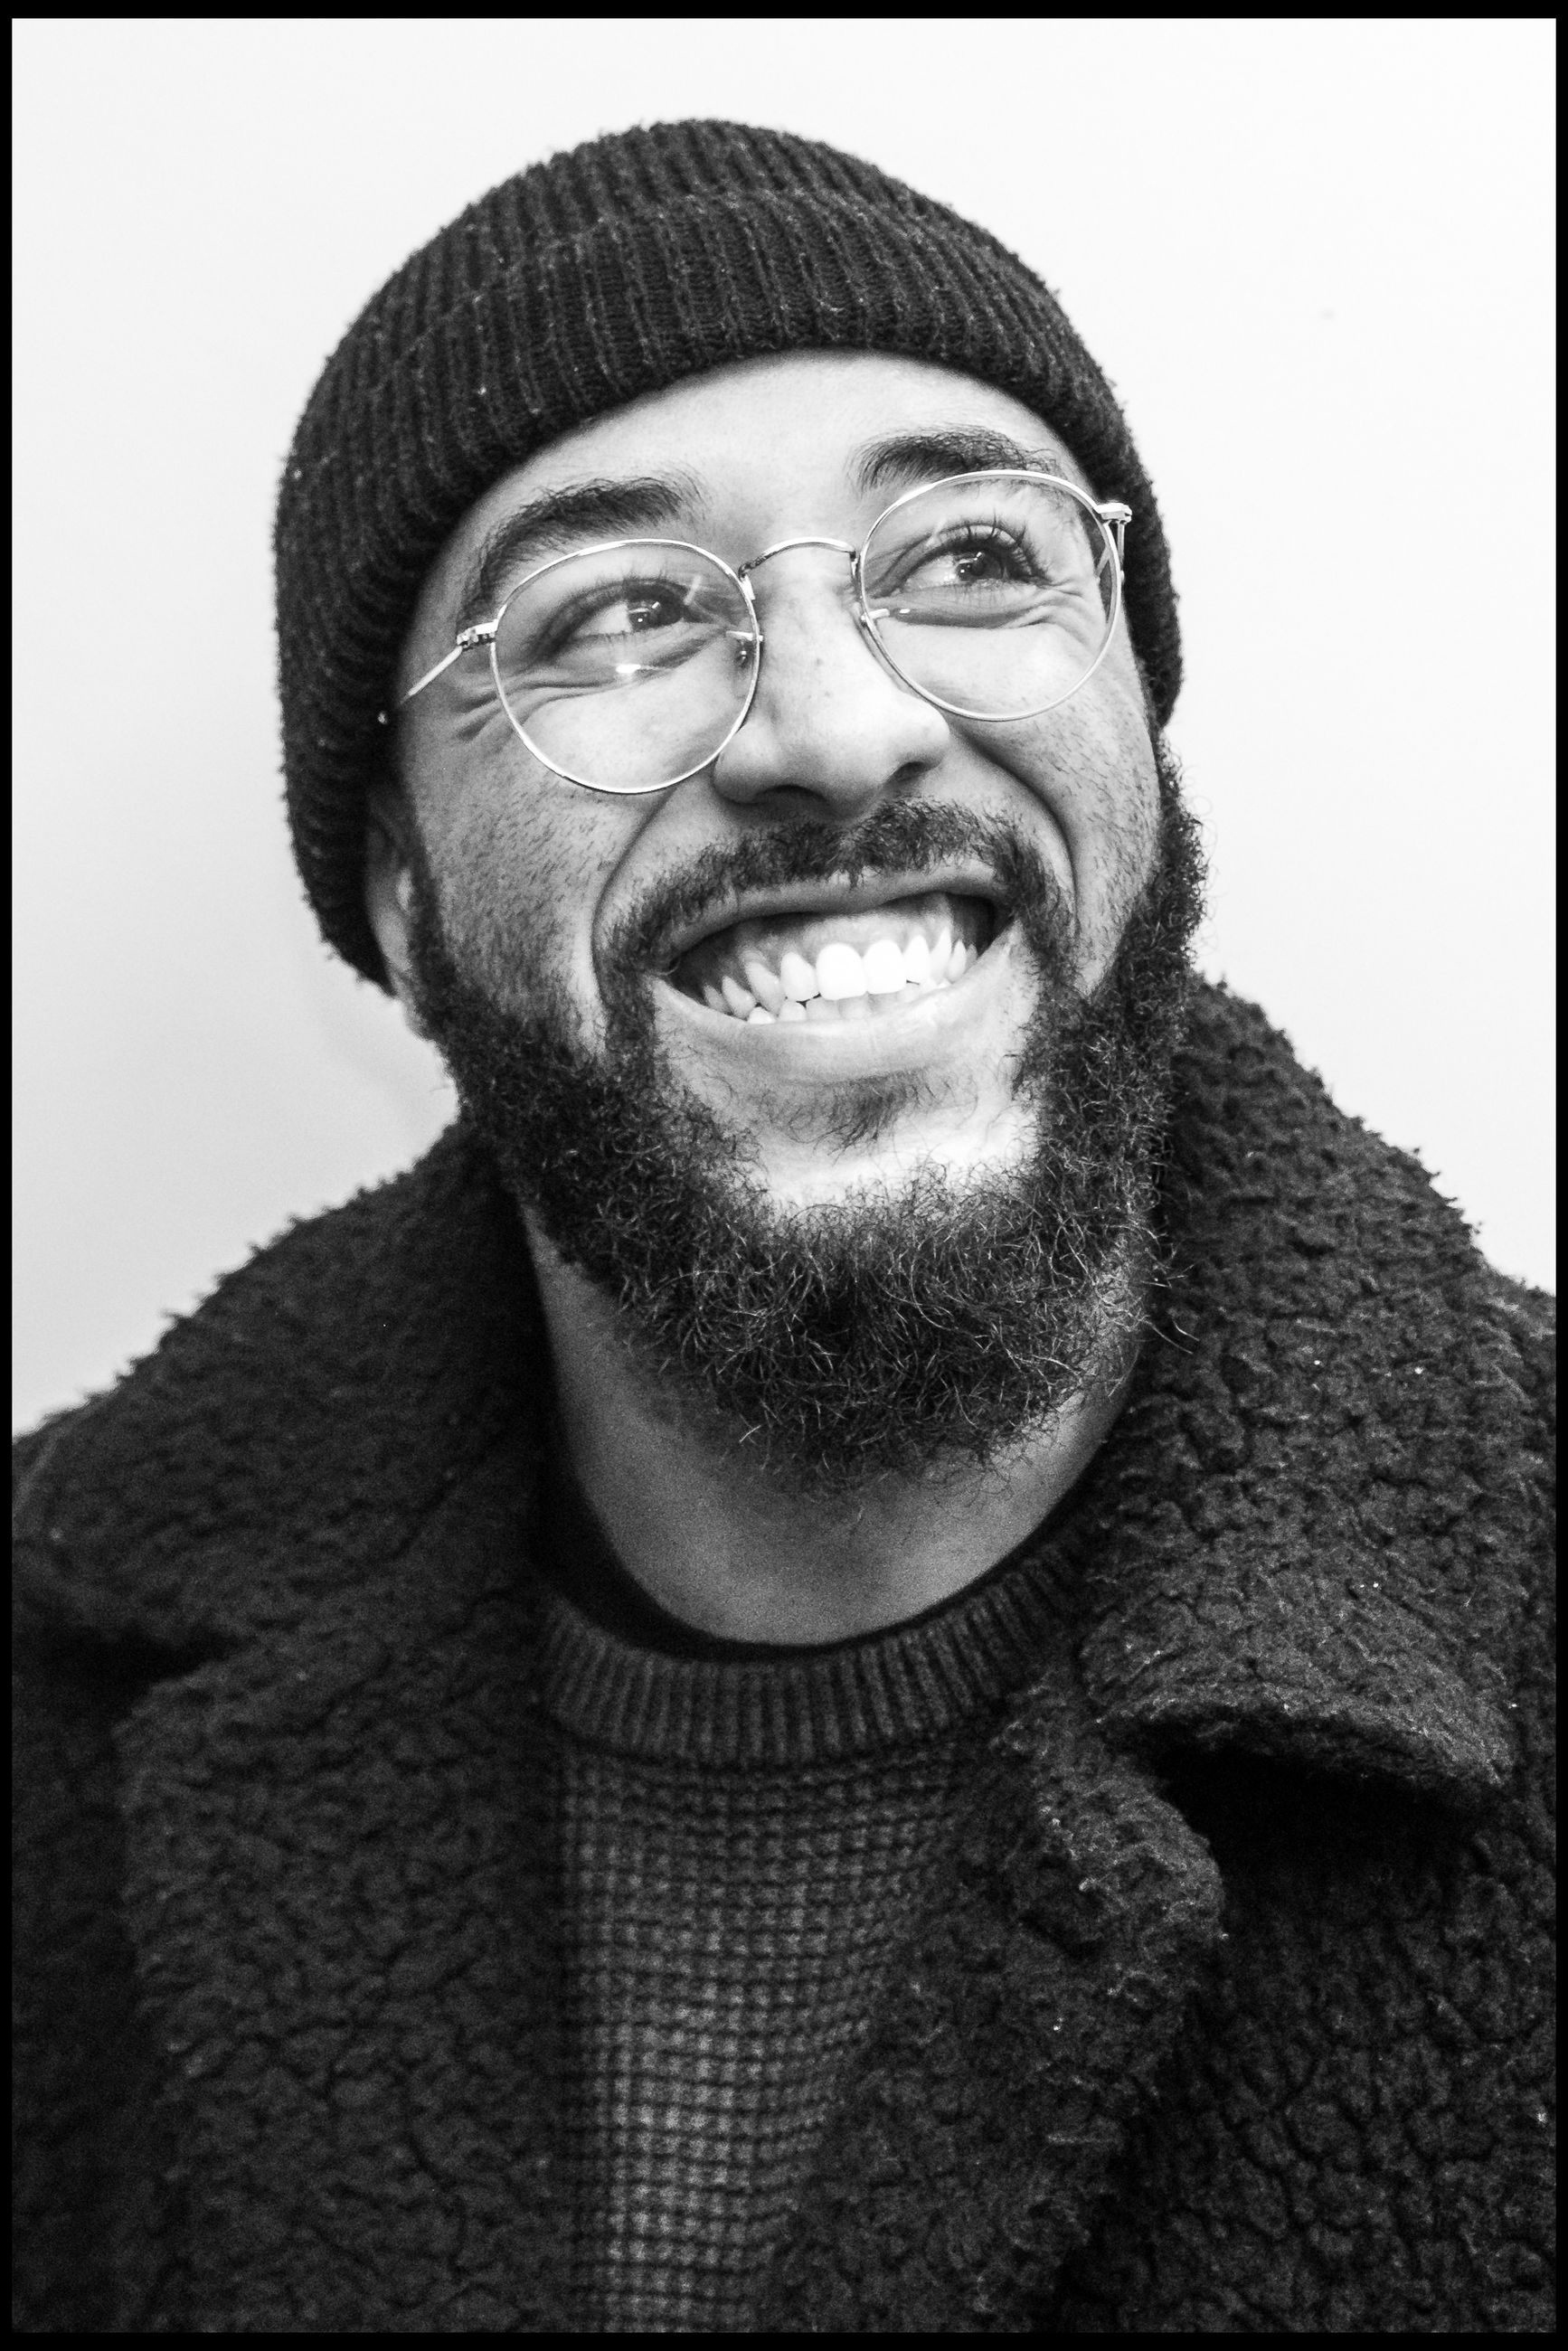 portrait, smiling, clothing, happiness, one person, front view, looking at camera, toothy smile, emotion, facial hair, headshot, teeth, beard, glasses, warm clothing, winter, sweater, real people, adult, mouth open, human face